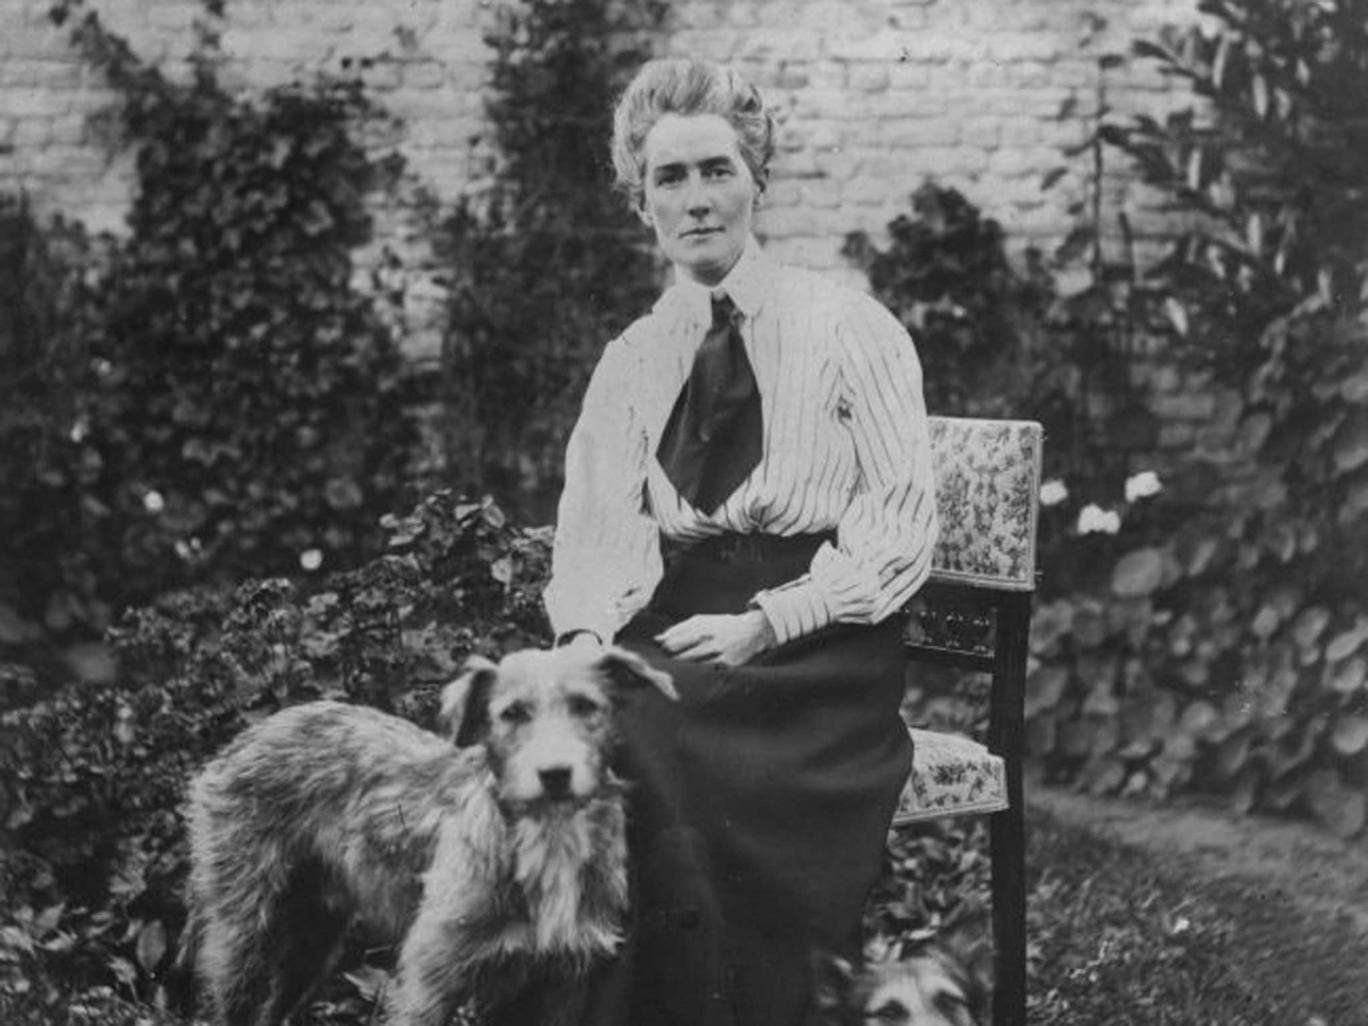 Laid to rest: Edith Cavell circa 1905